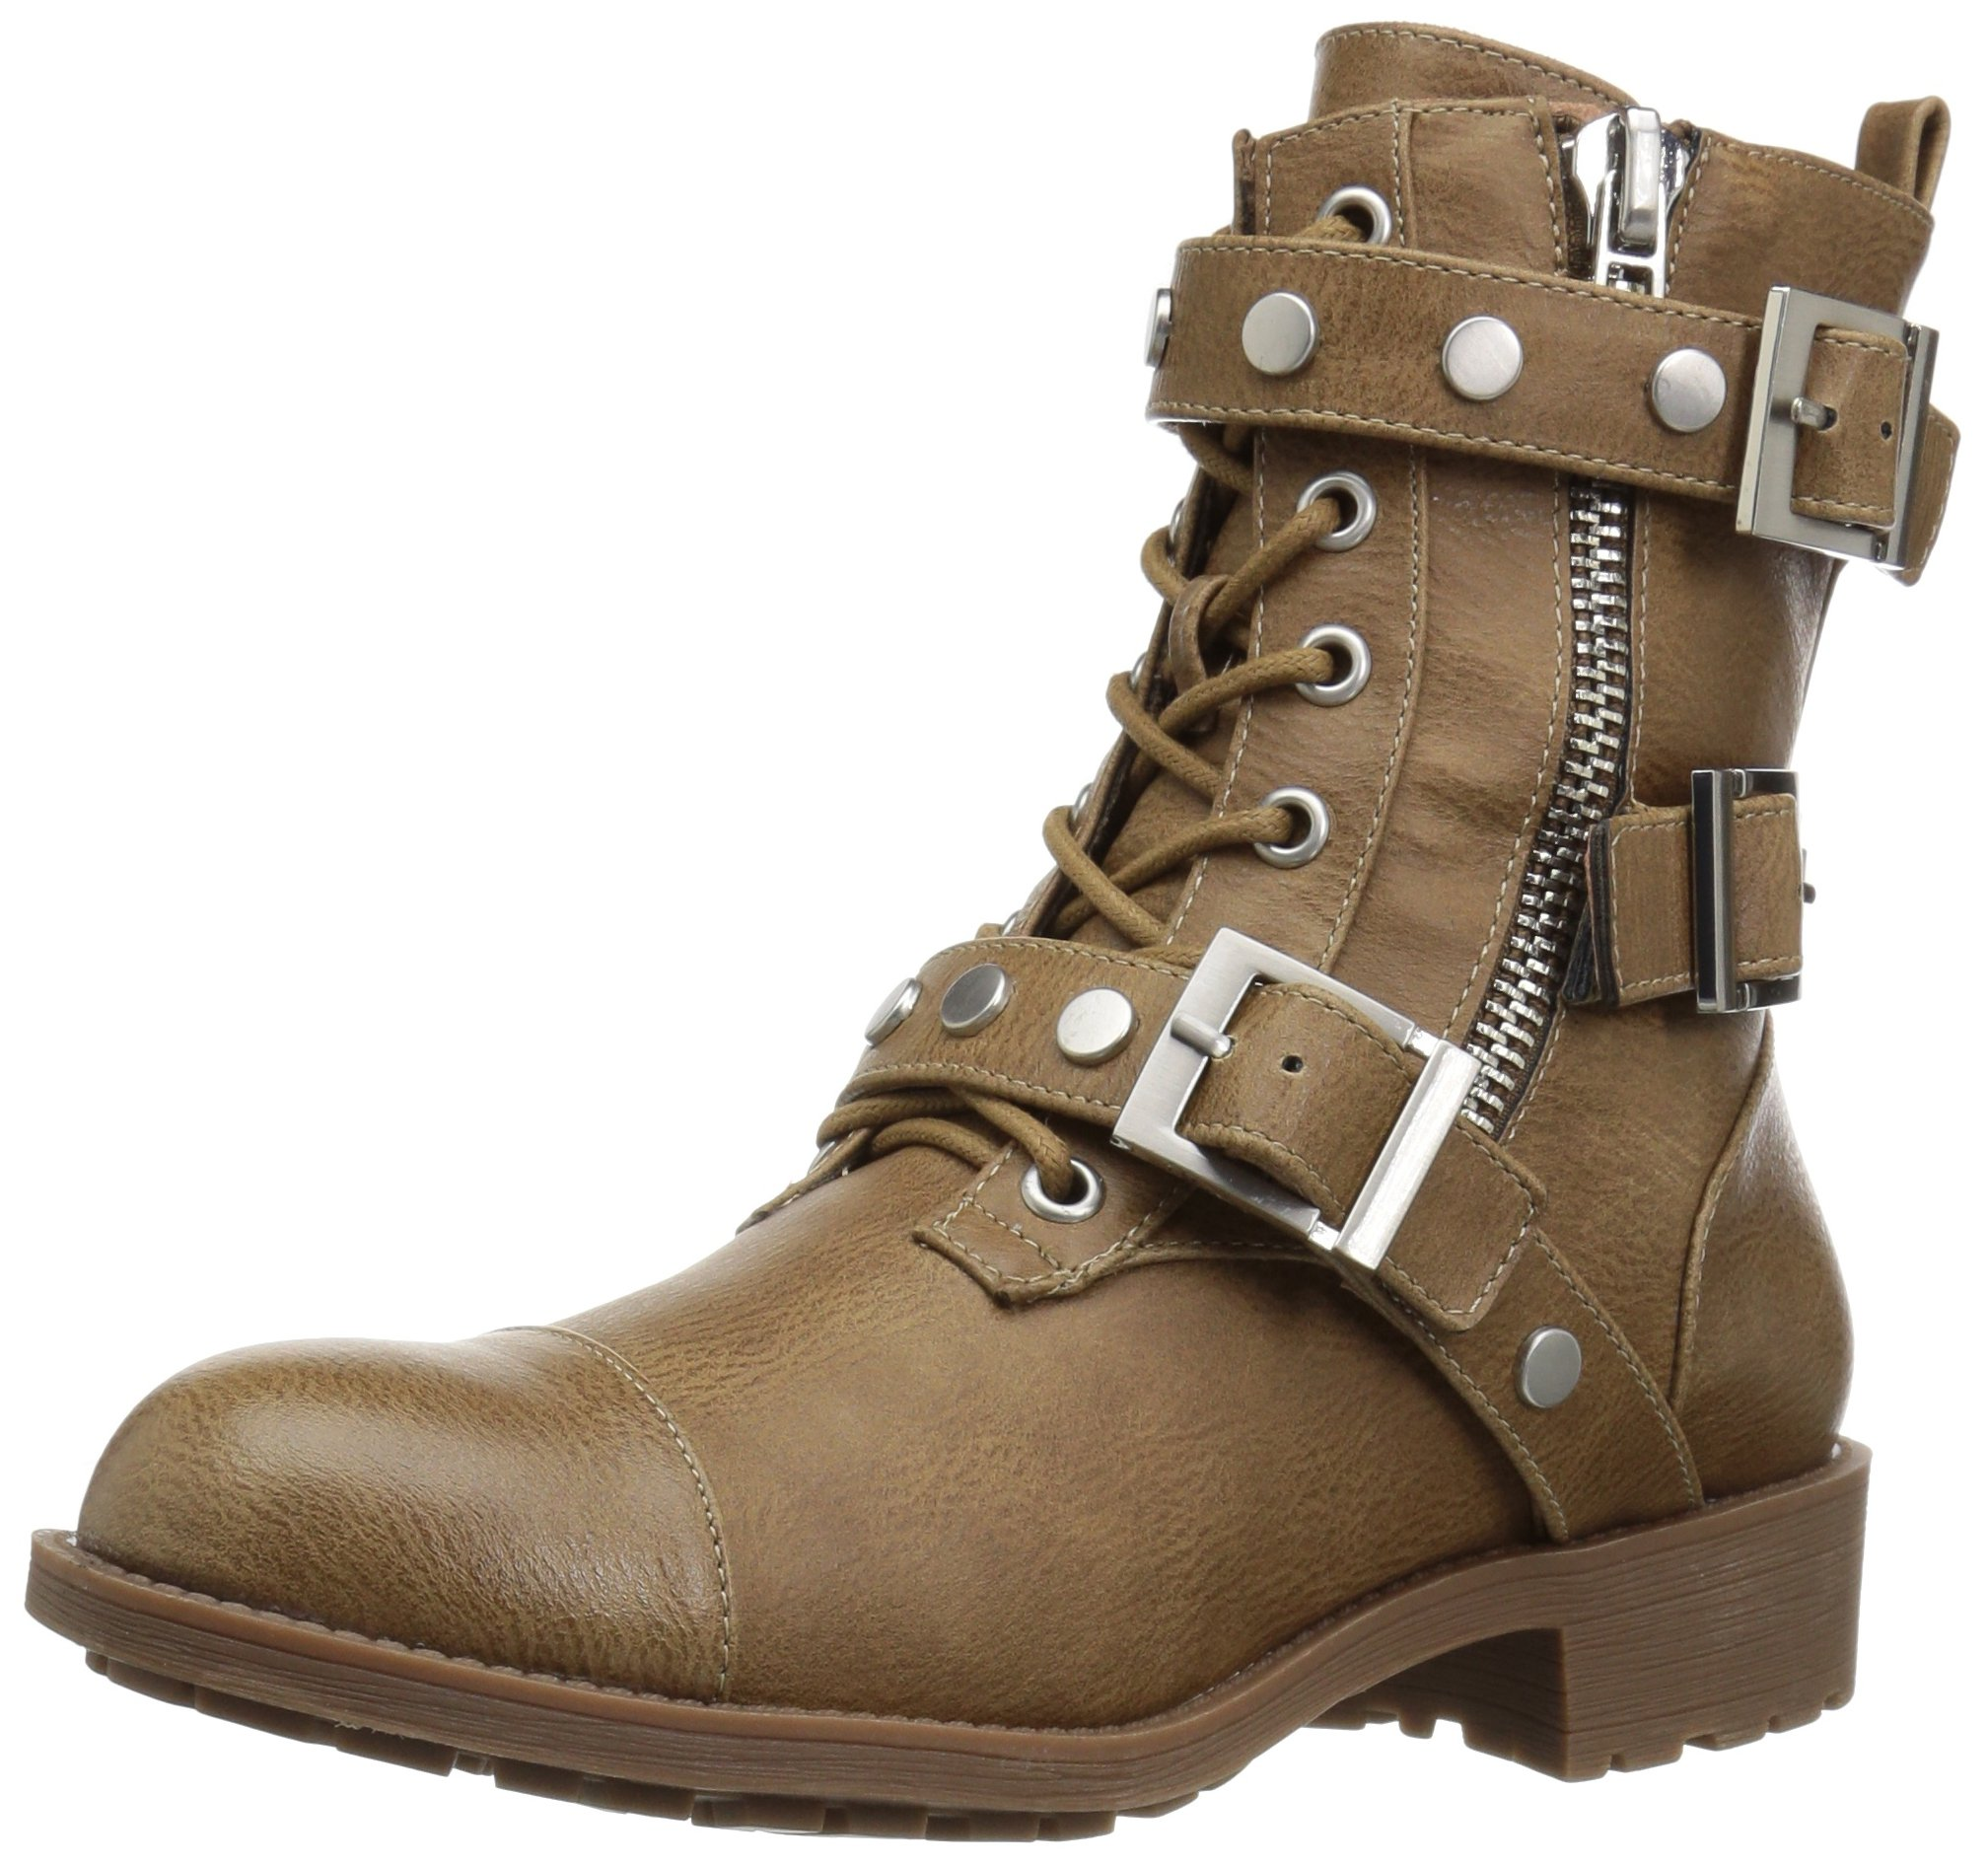 Style by Charles David Women's Caden Motorcycle Boot, Taupe, 8 Medium US